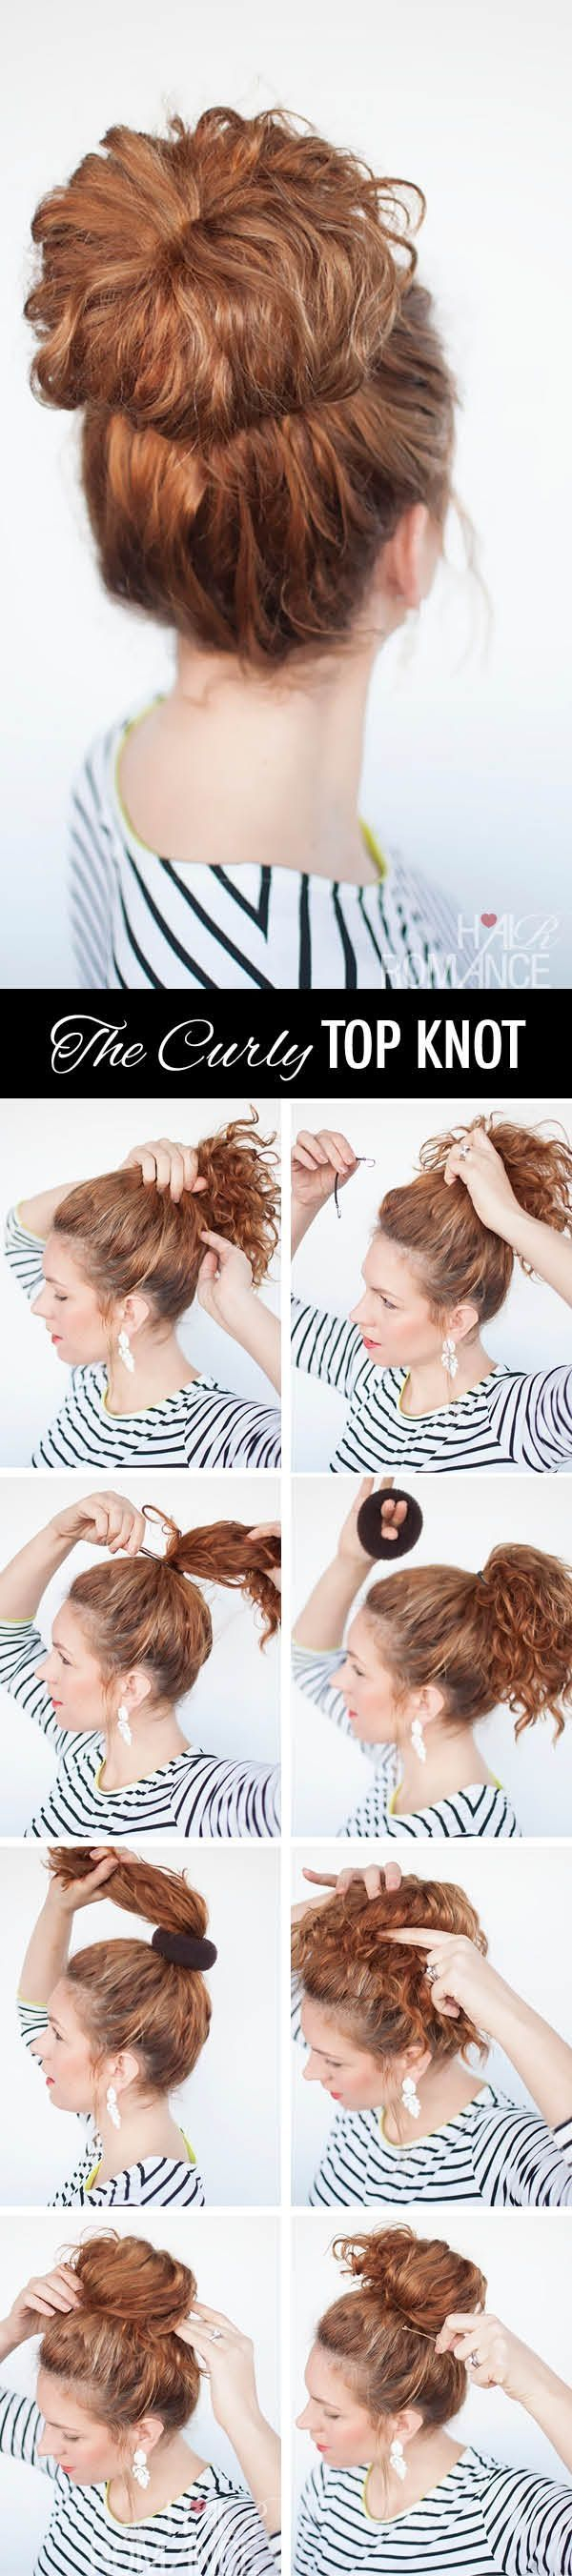 Hair Romance - the curly top knot hairstyle tutorial by patty